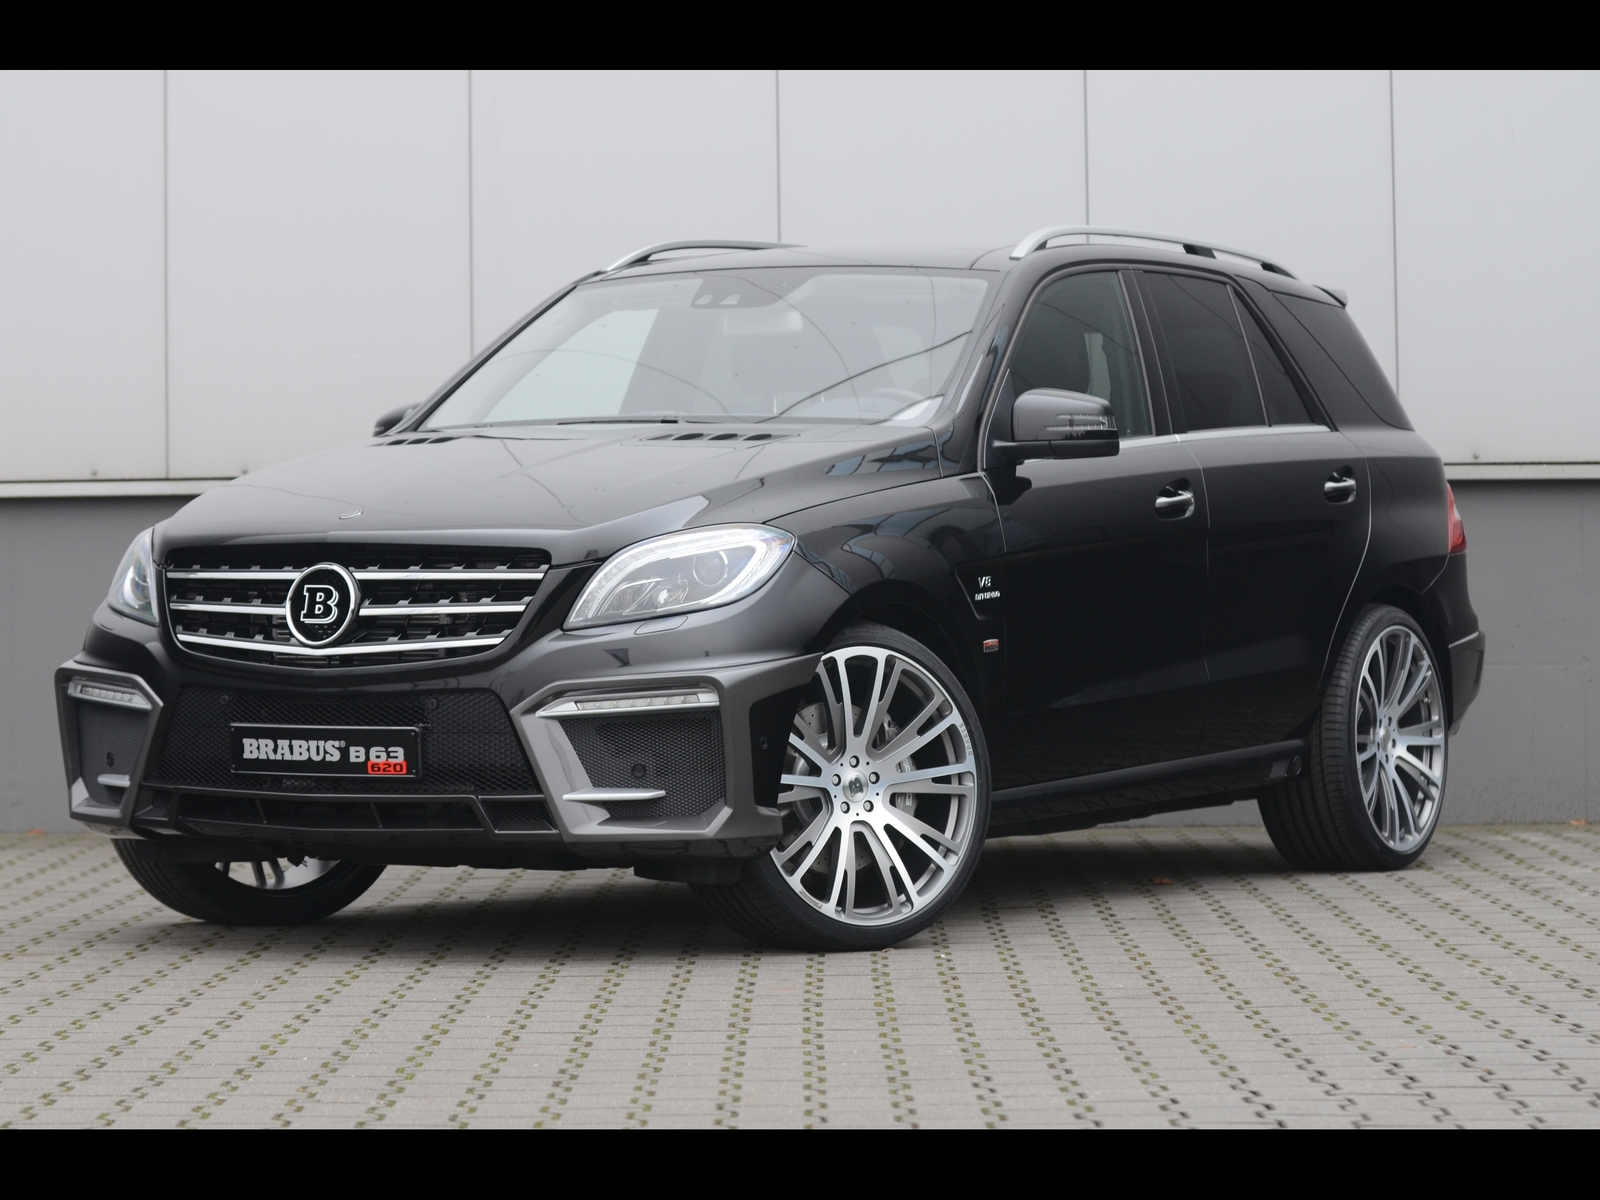 CAR NEWS LUX Brabus ML 63 AMG B63 620